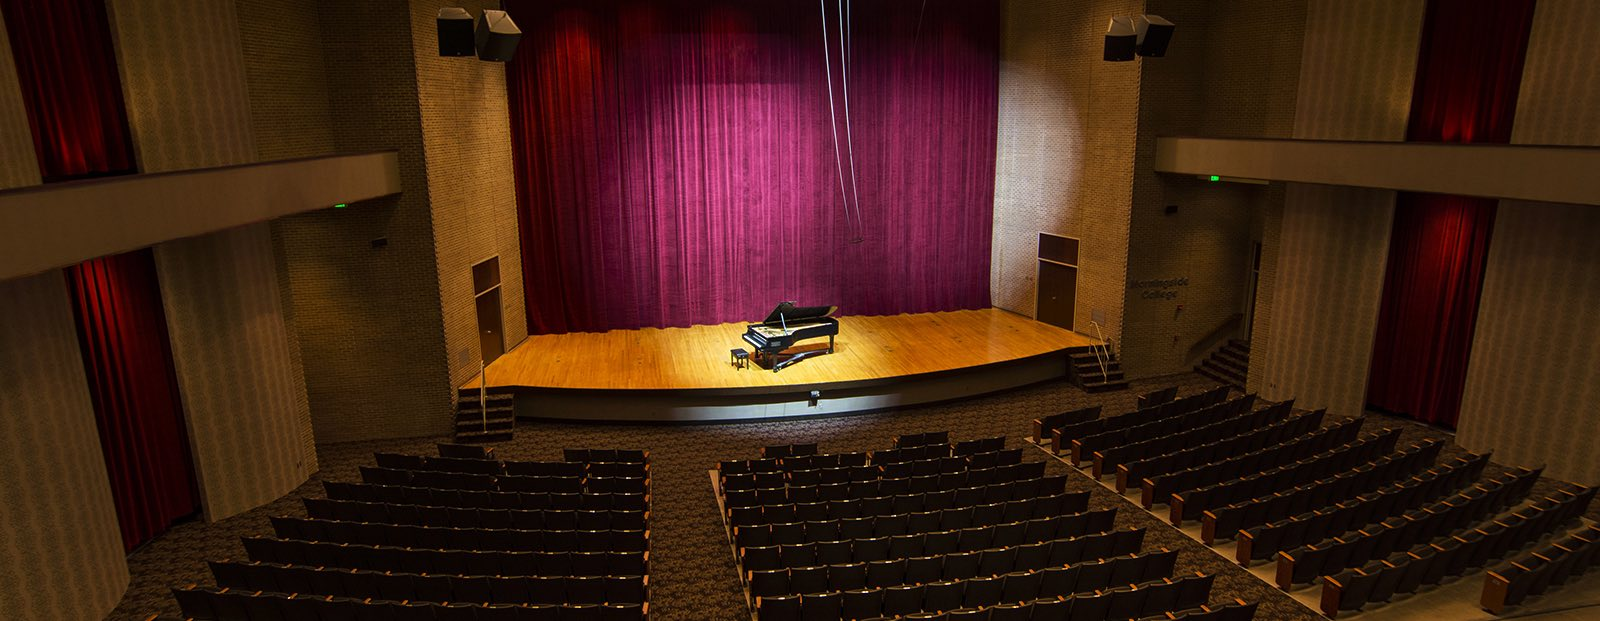 Piano on the stage of Eppley Auditorium